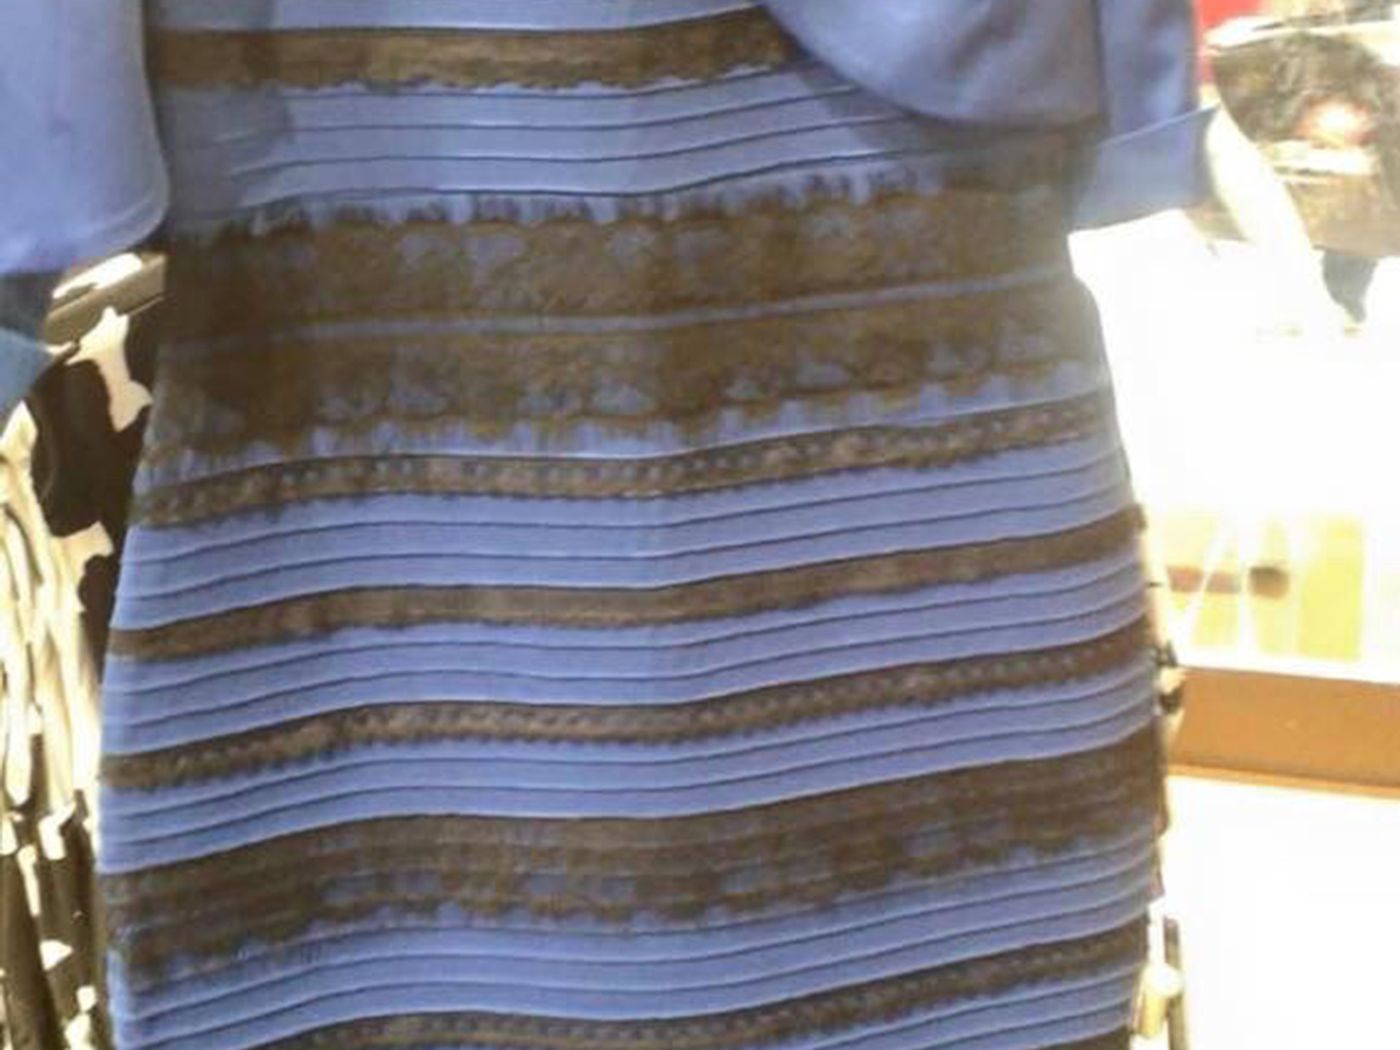 bb6ea82e2ed The science behind that absurd color-changing dress, explained - Vox